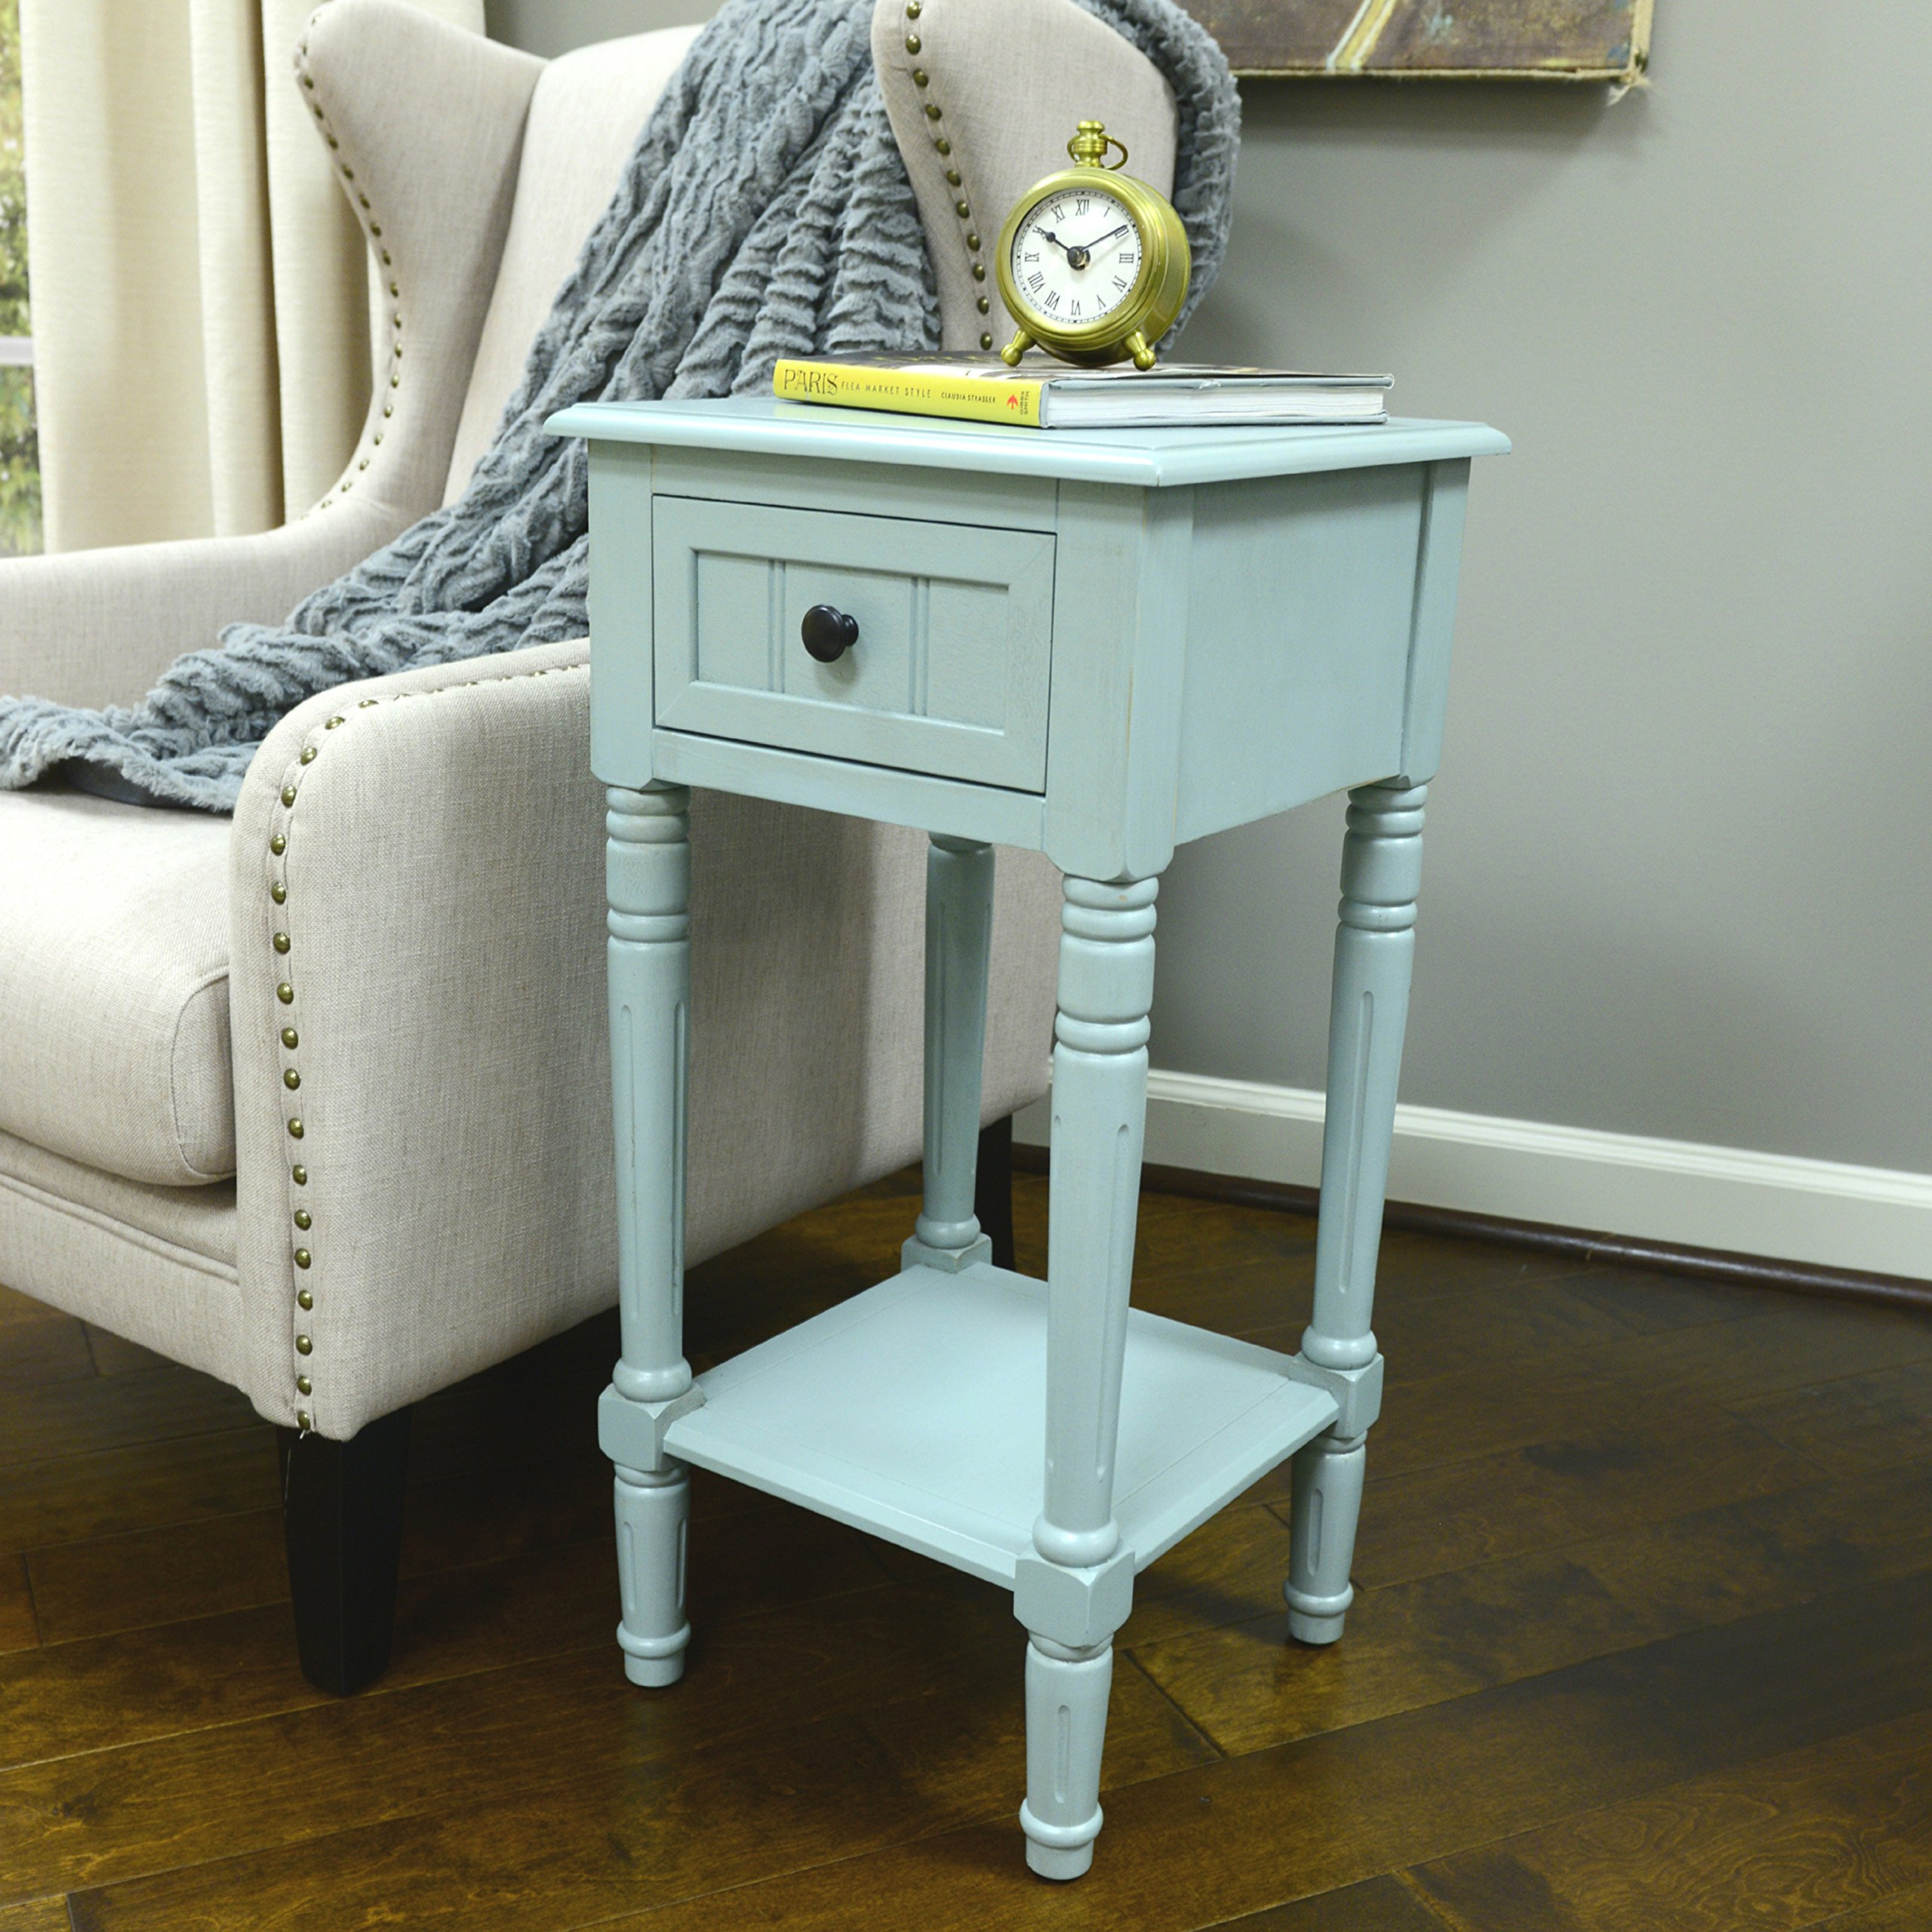 decor therapy simplify one drawer square accent table pgrwtfl oval antique iced blue kids writing desk mercury glass lamp folding and chairs ikea target wicker tile transition